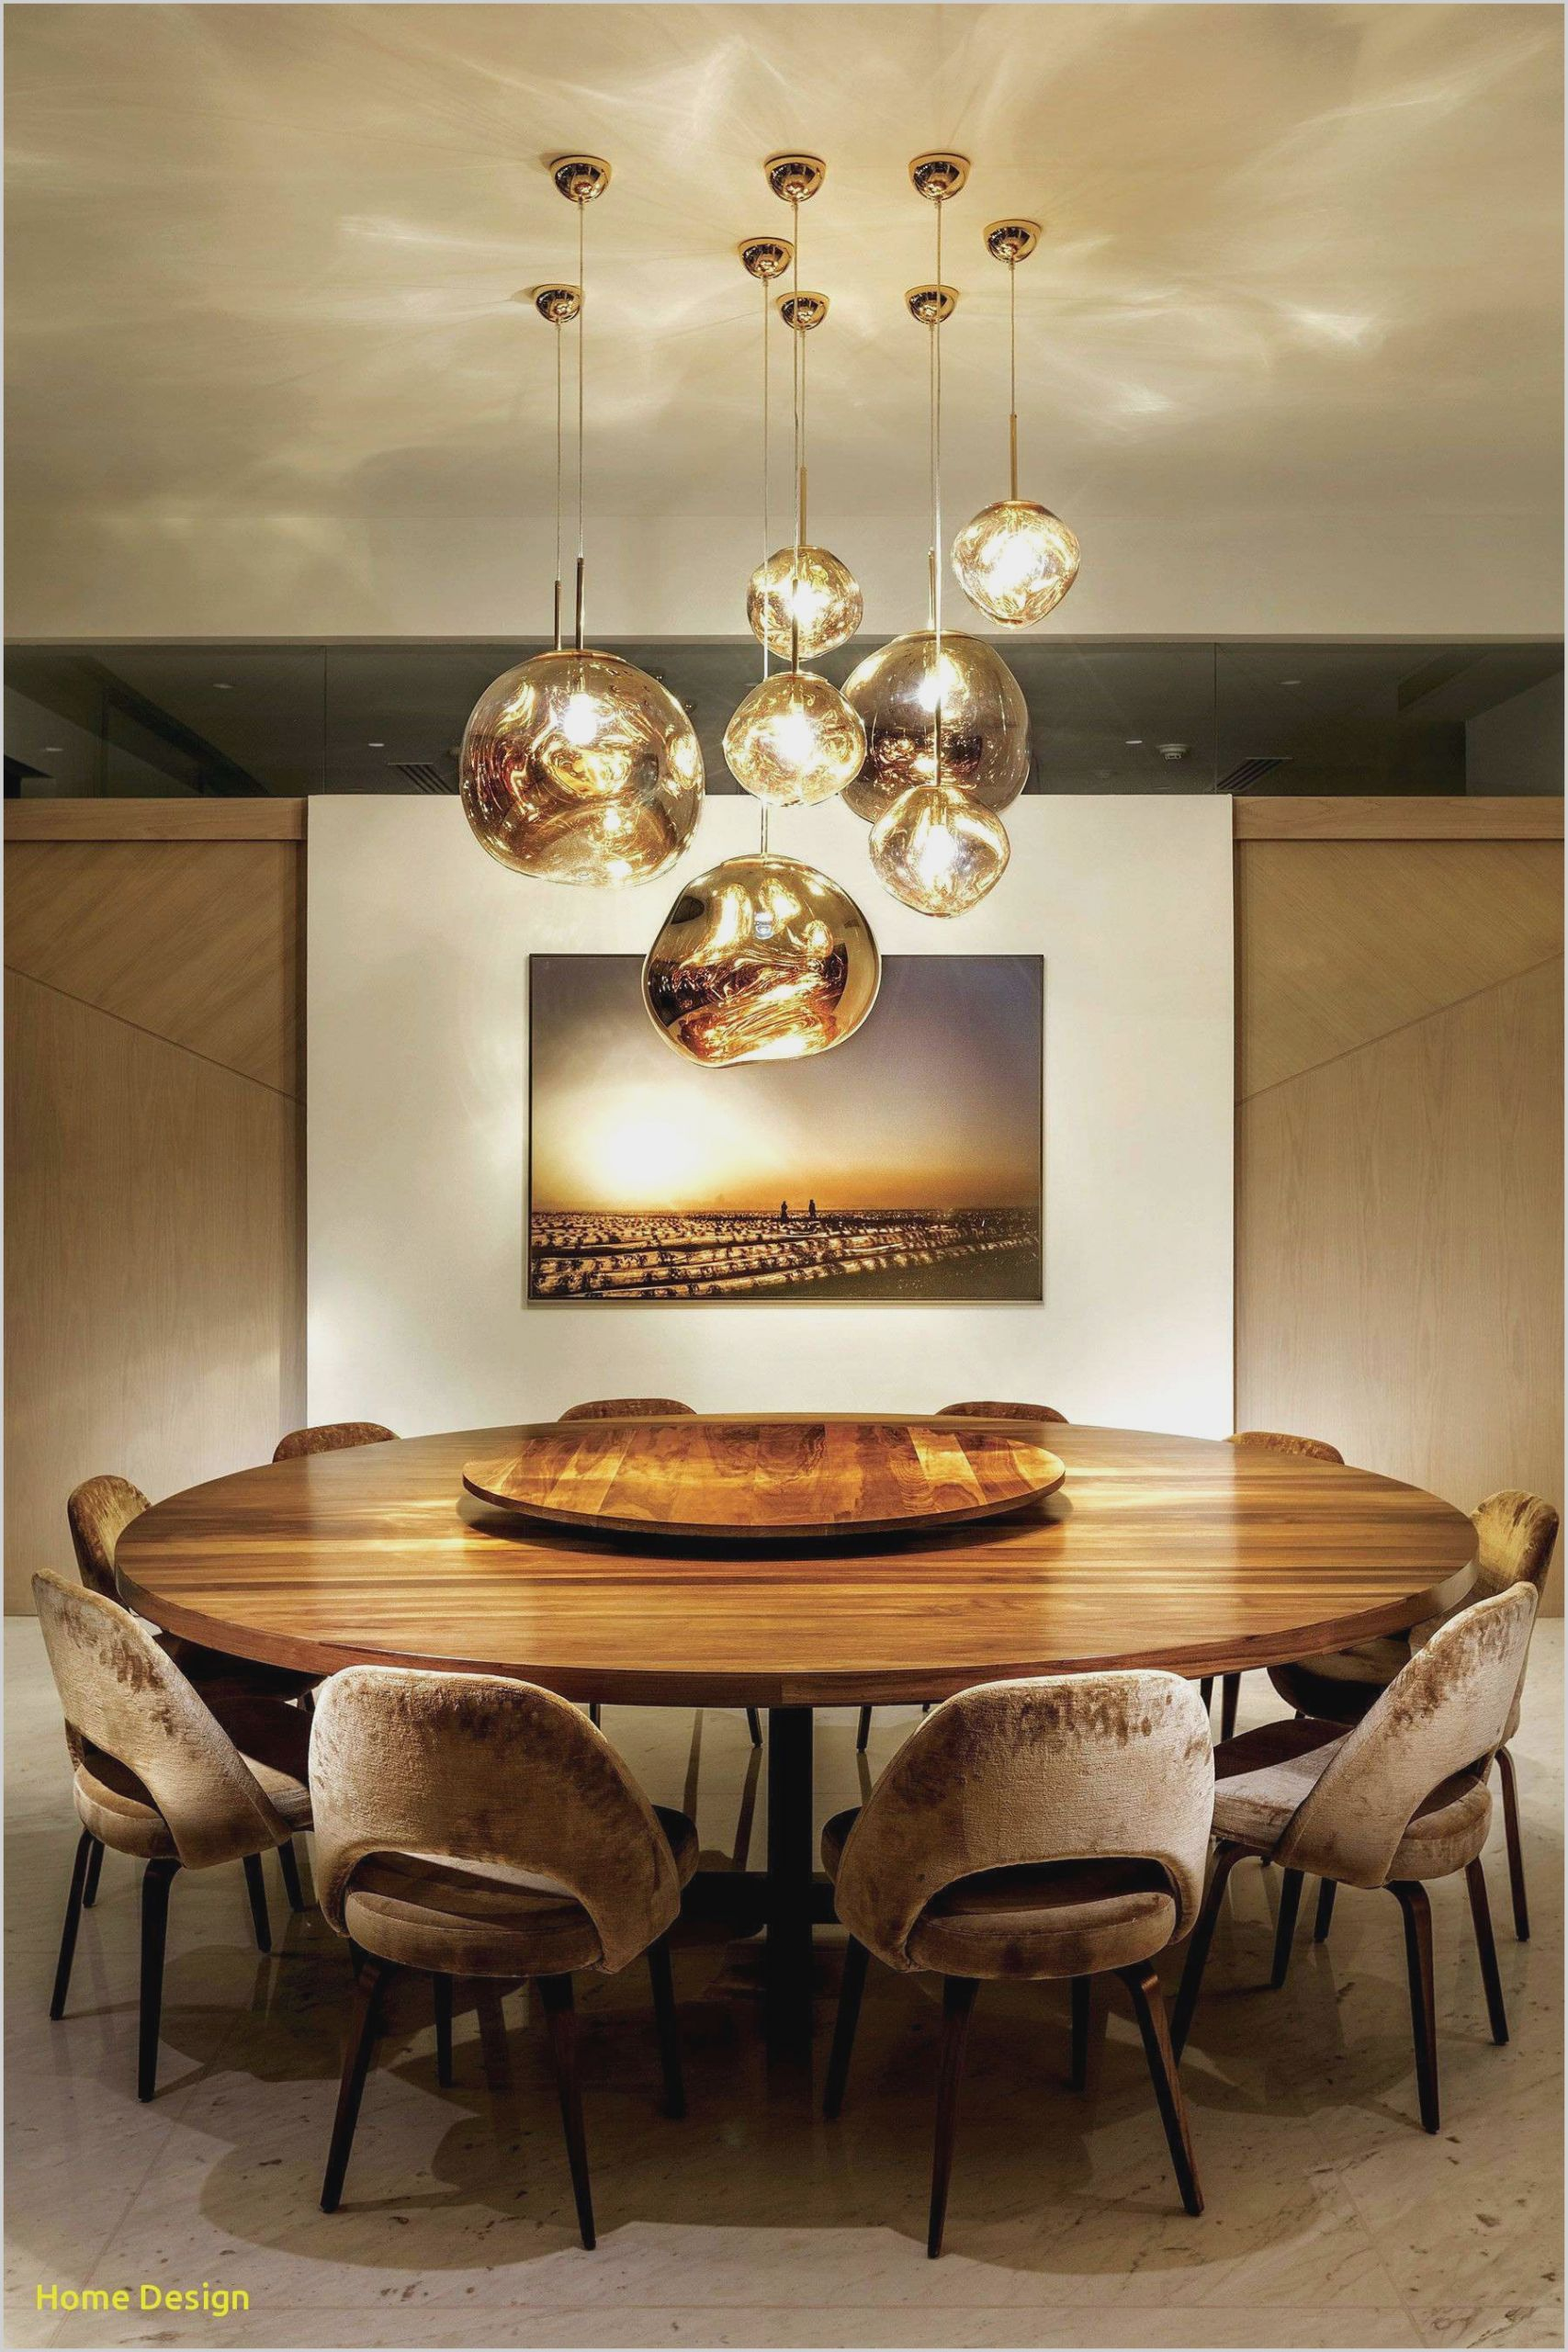 Chandelier For Small Living Room Philippines In 2020 Dining Room Table Decor Modern Dining Room Dining Room Lighting